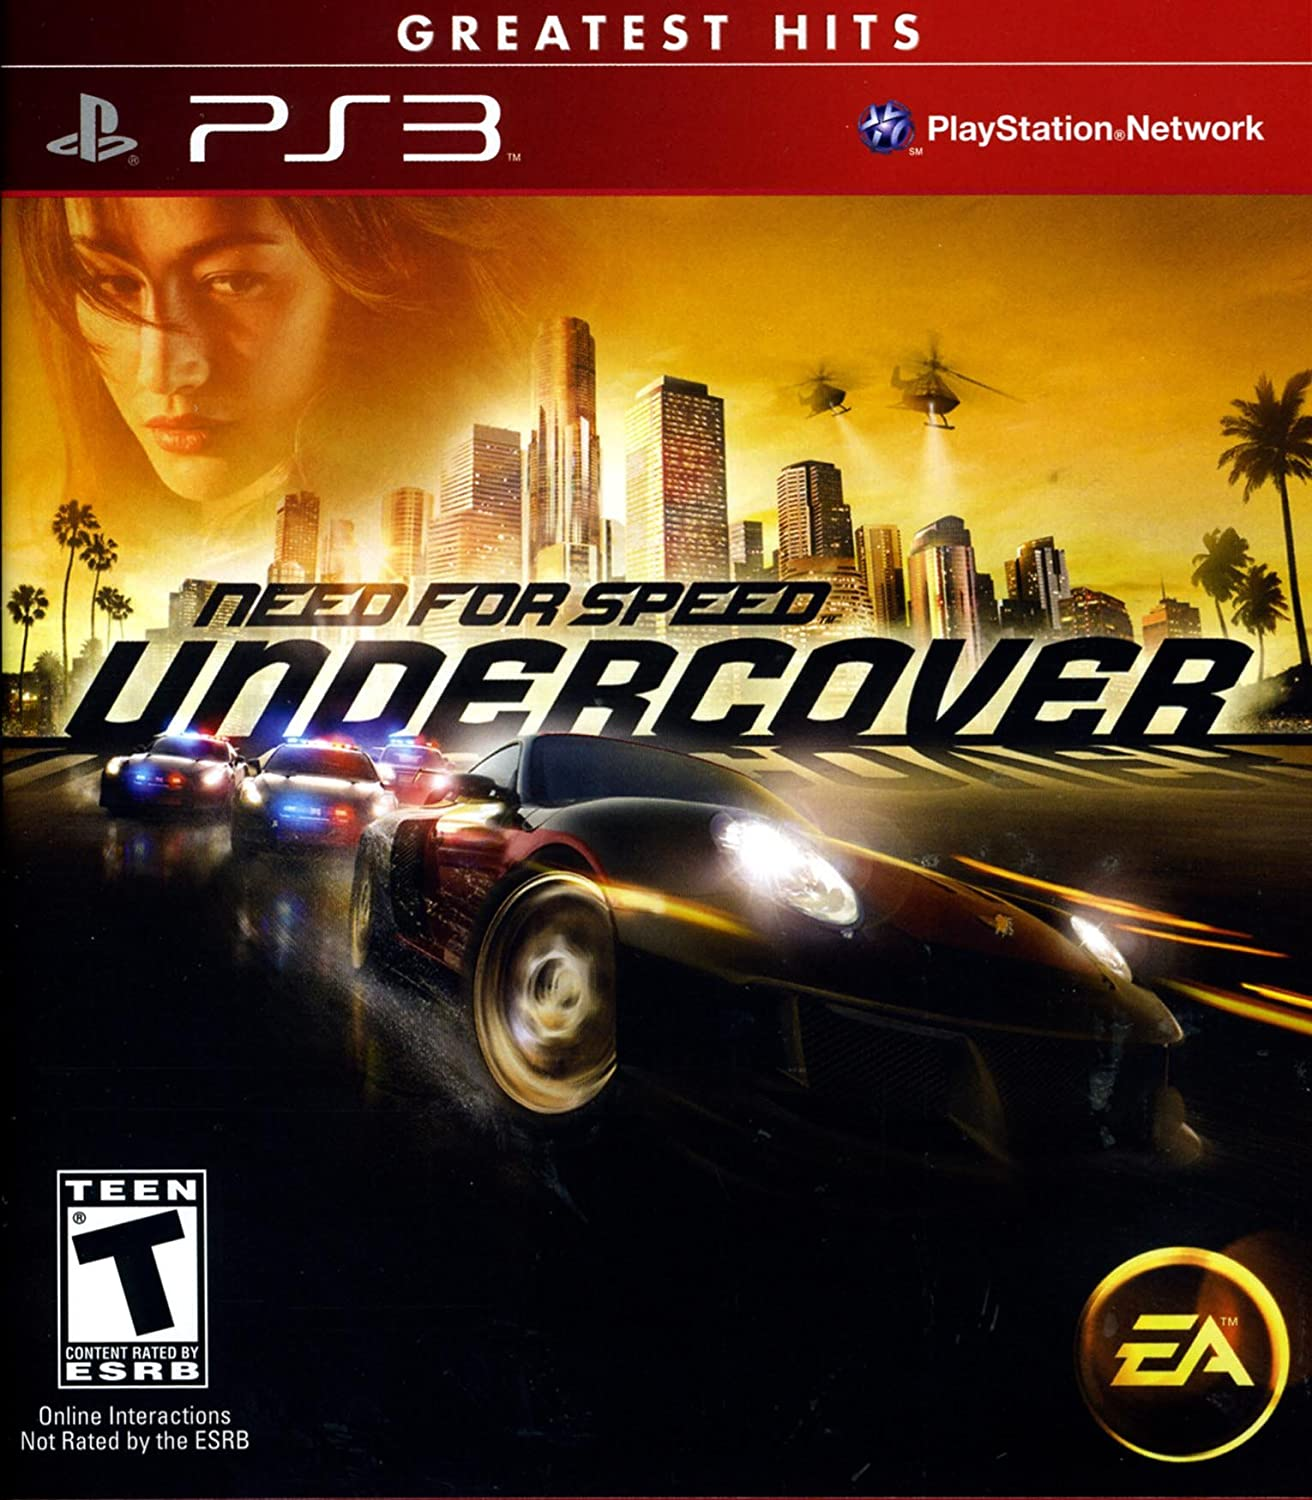 Need for speed movie soundtrack free download | Free Speed